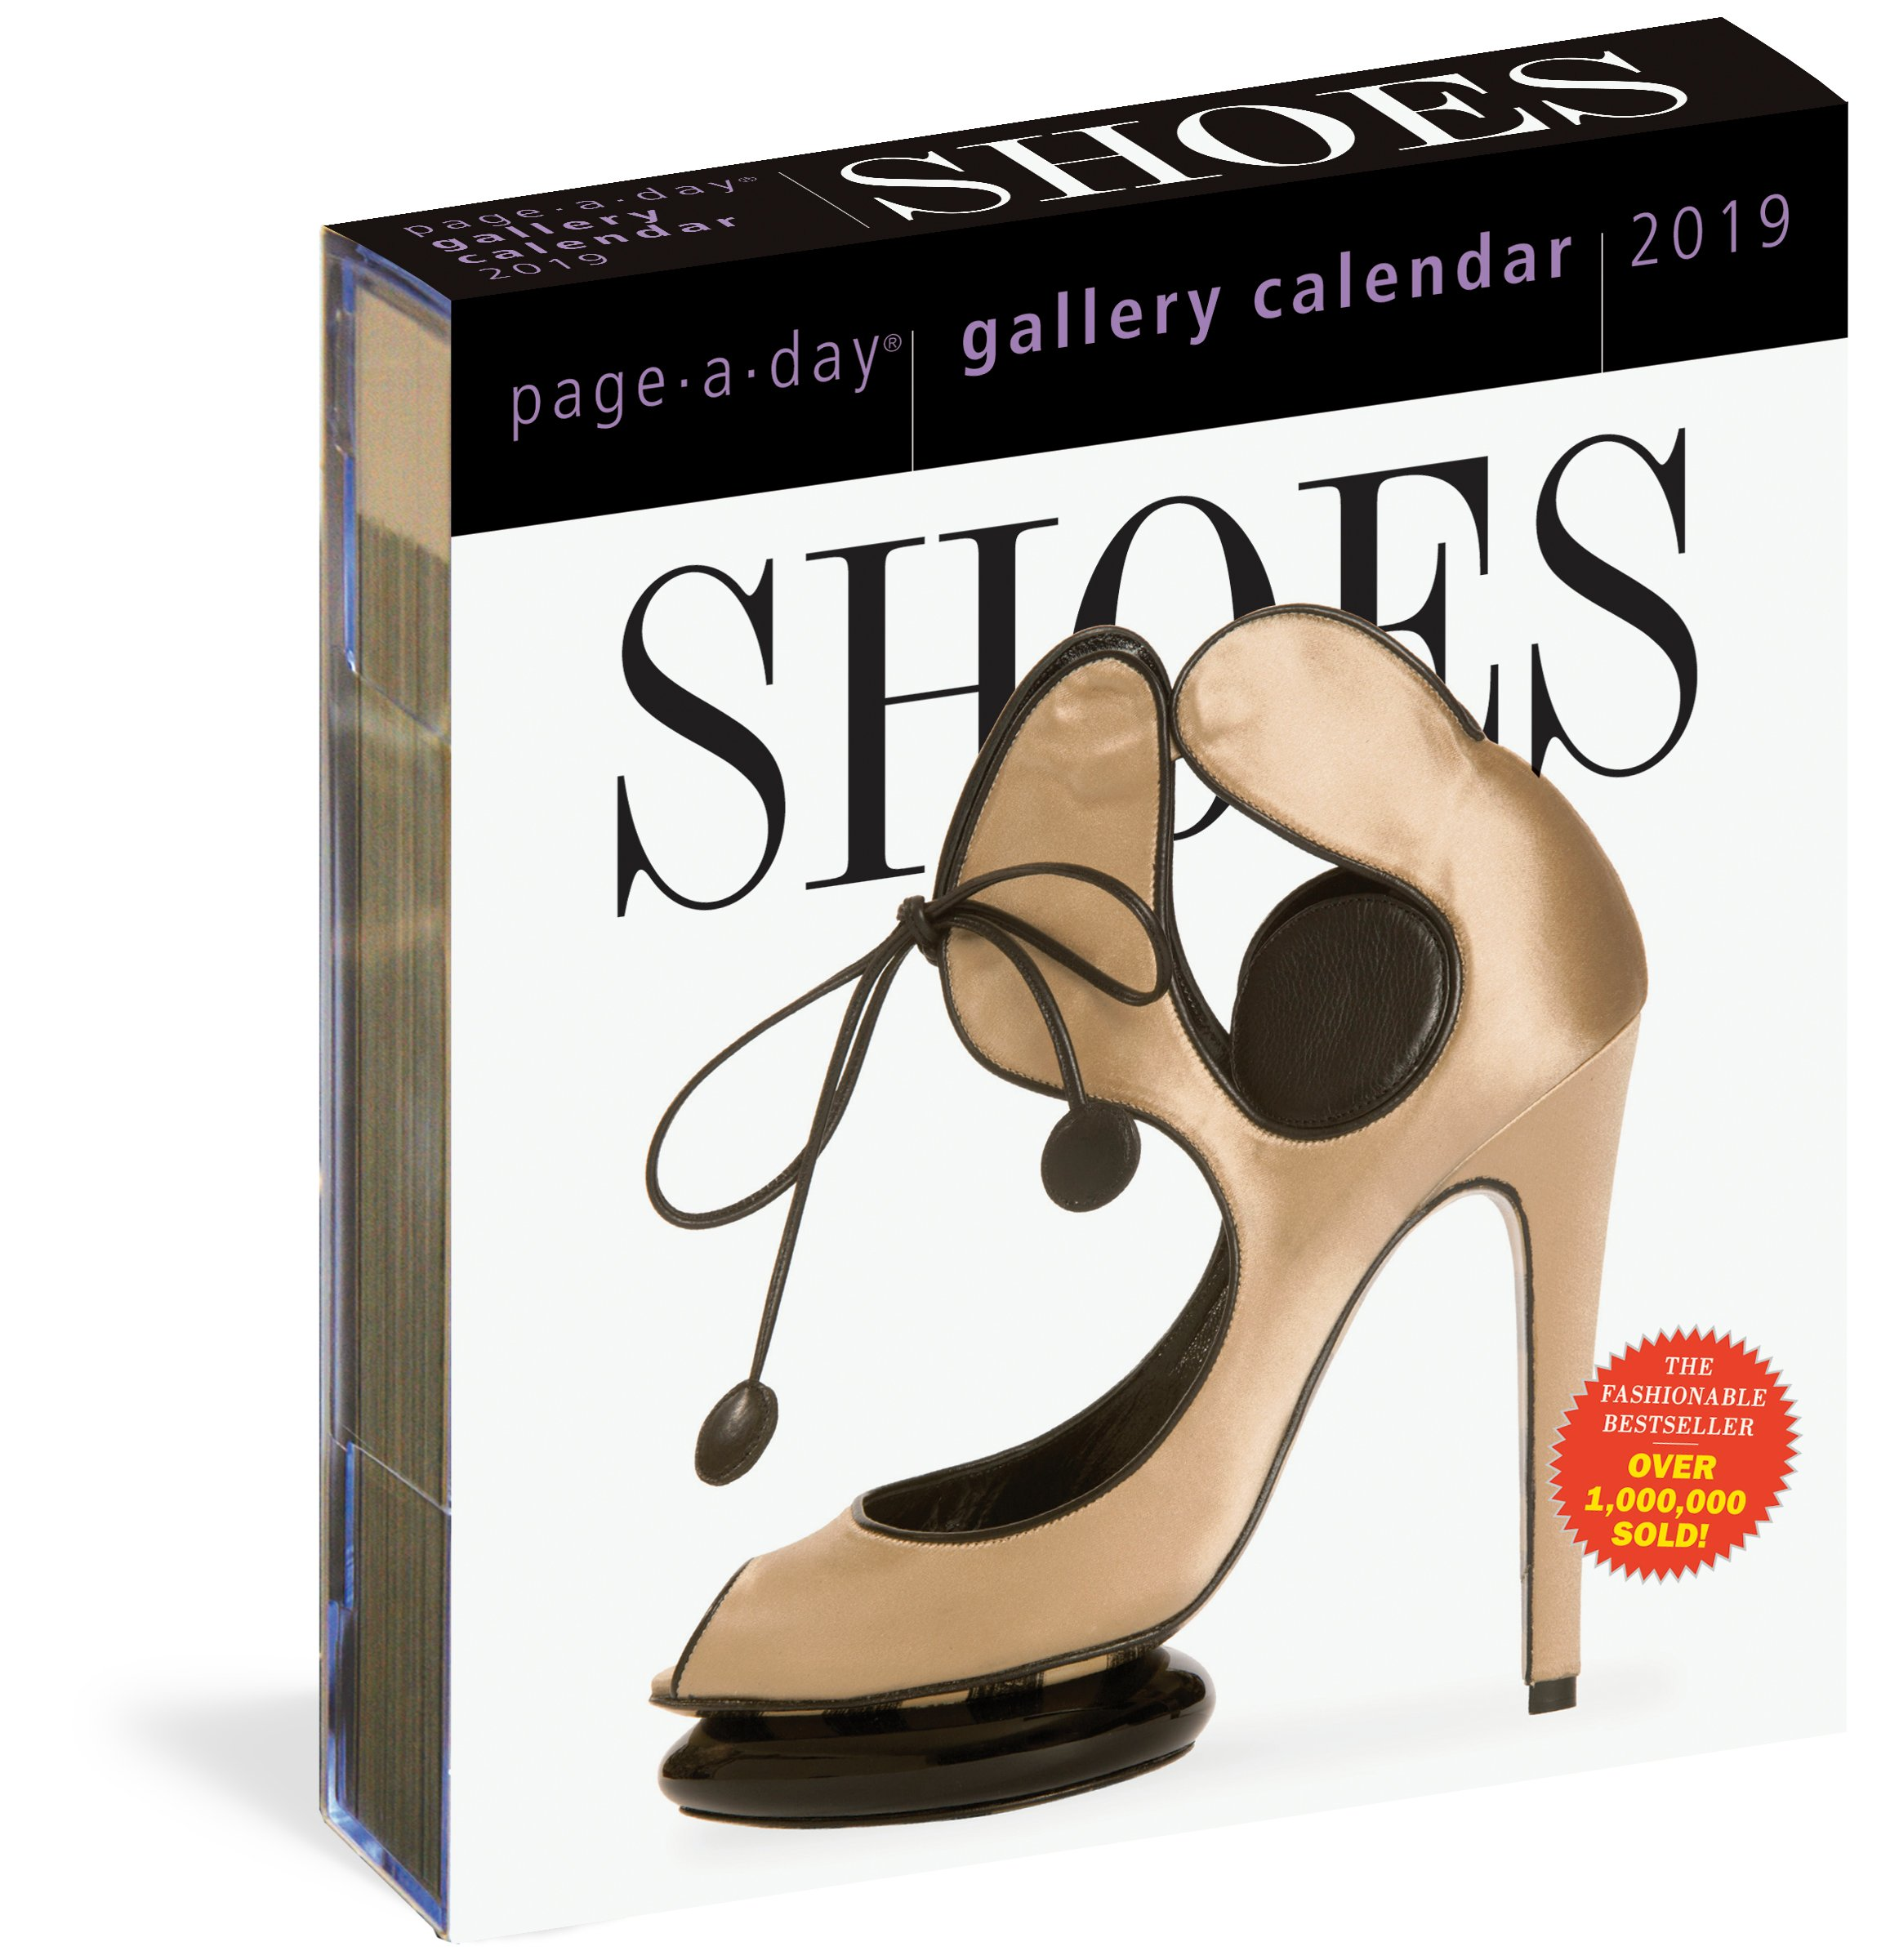 Shoes Page-A-Day Gallery Calendar 2019 Calendar – Day to Day Calendar 473525c3f